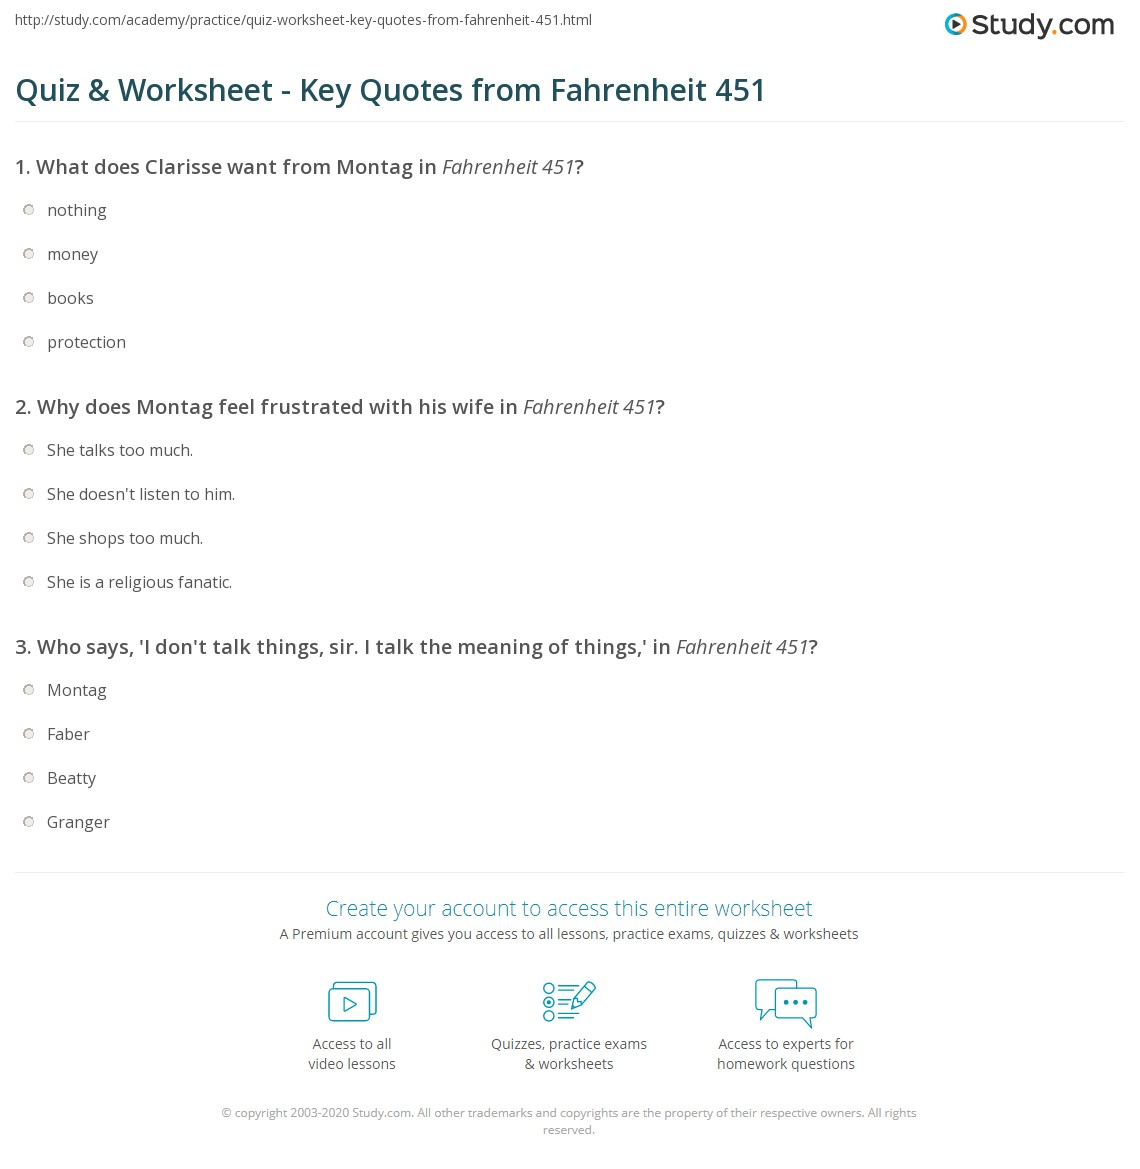 Fahrenheit 451 Quotes Quiz & Worksheet  Key Quotes From Fahrenheit 451  Study